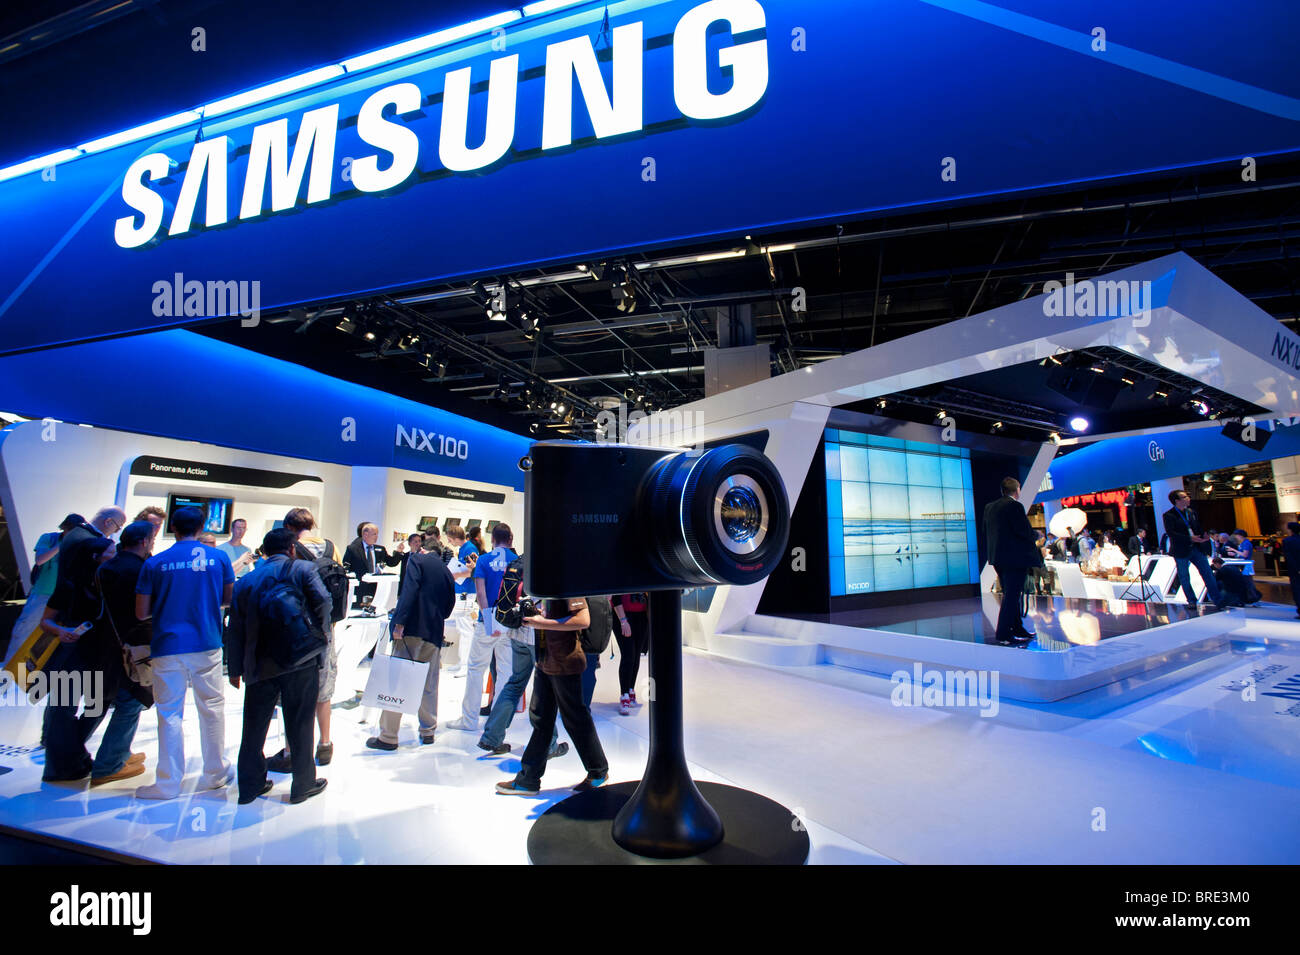 Samsung display stand at Photokina digital imaging trade show in Cologne Germany - Stock Image